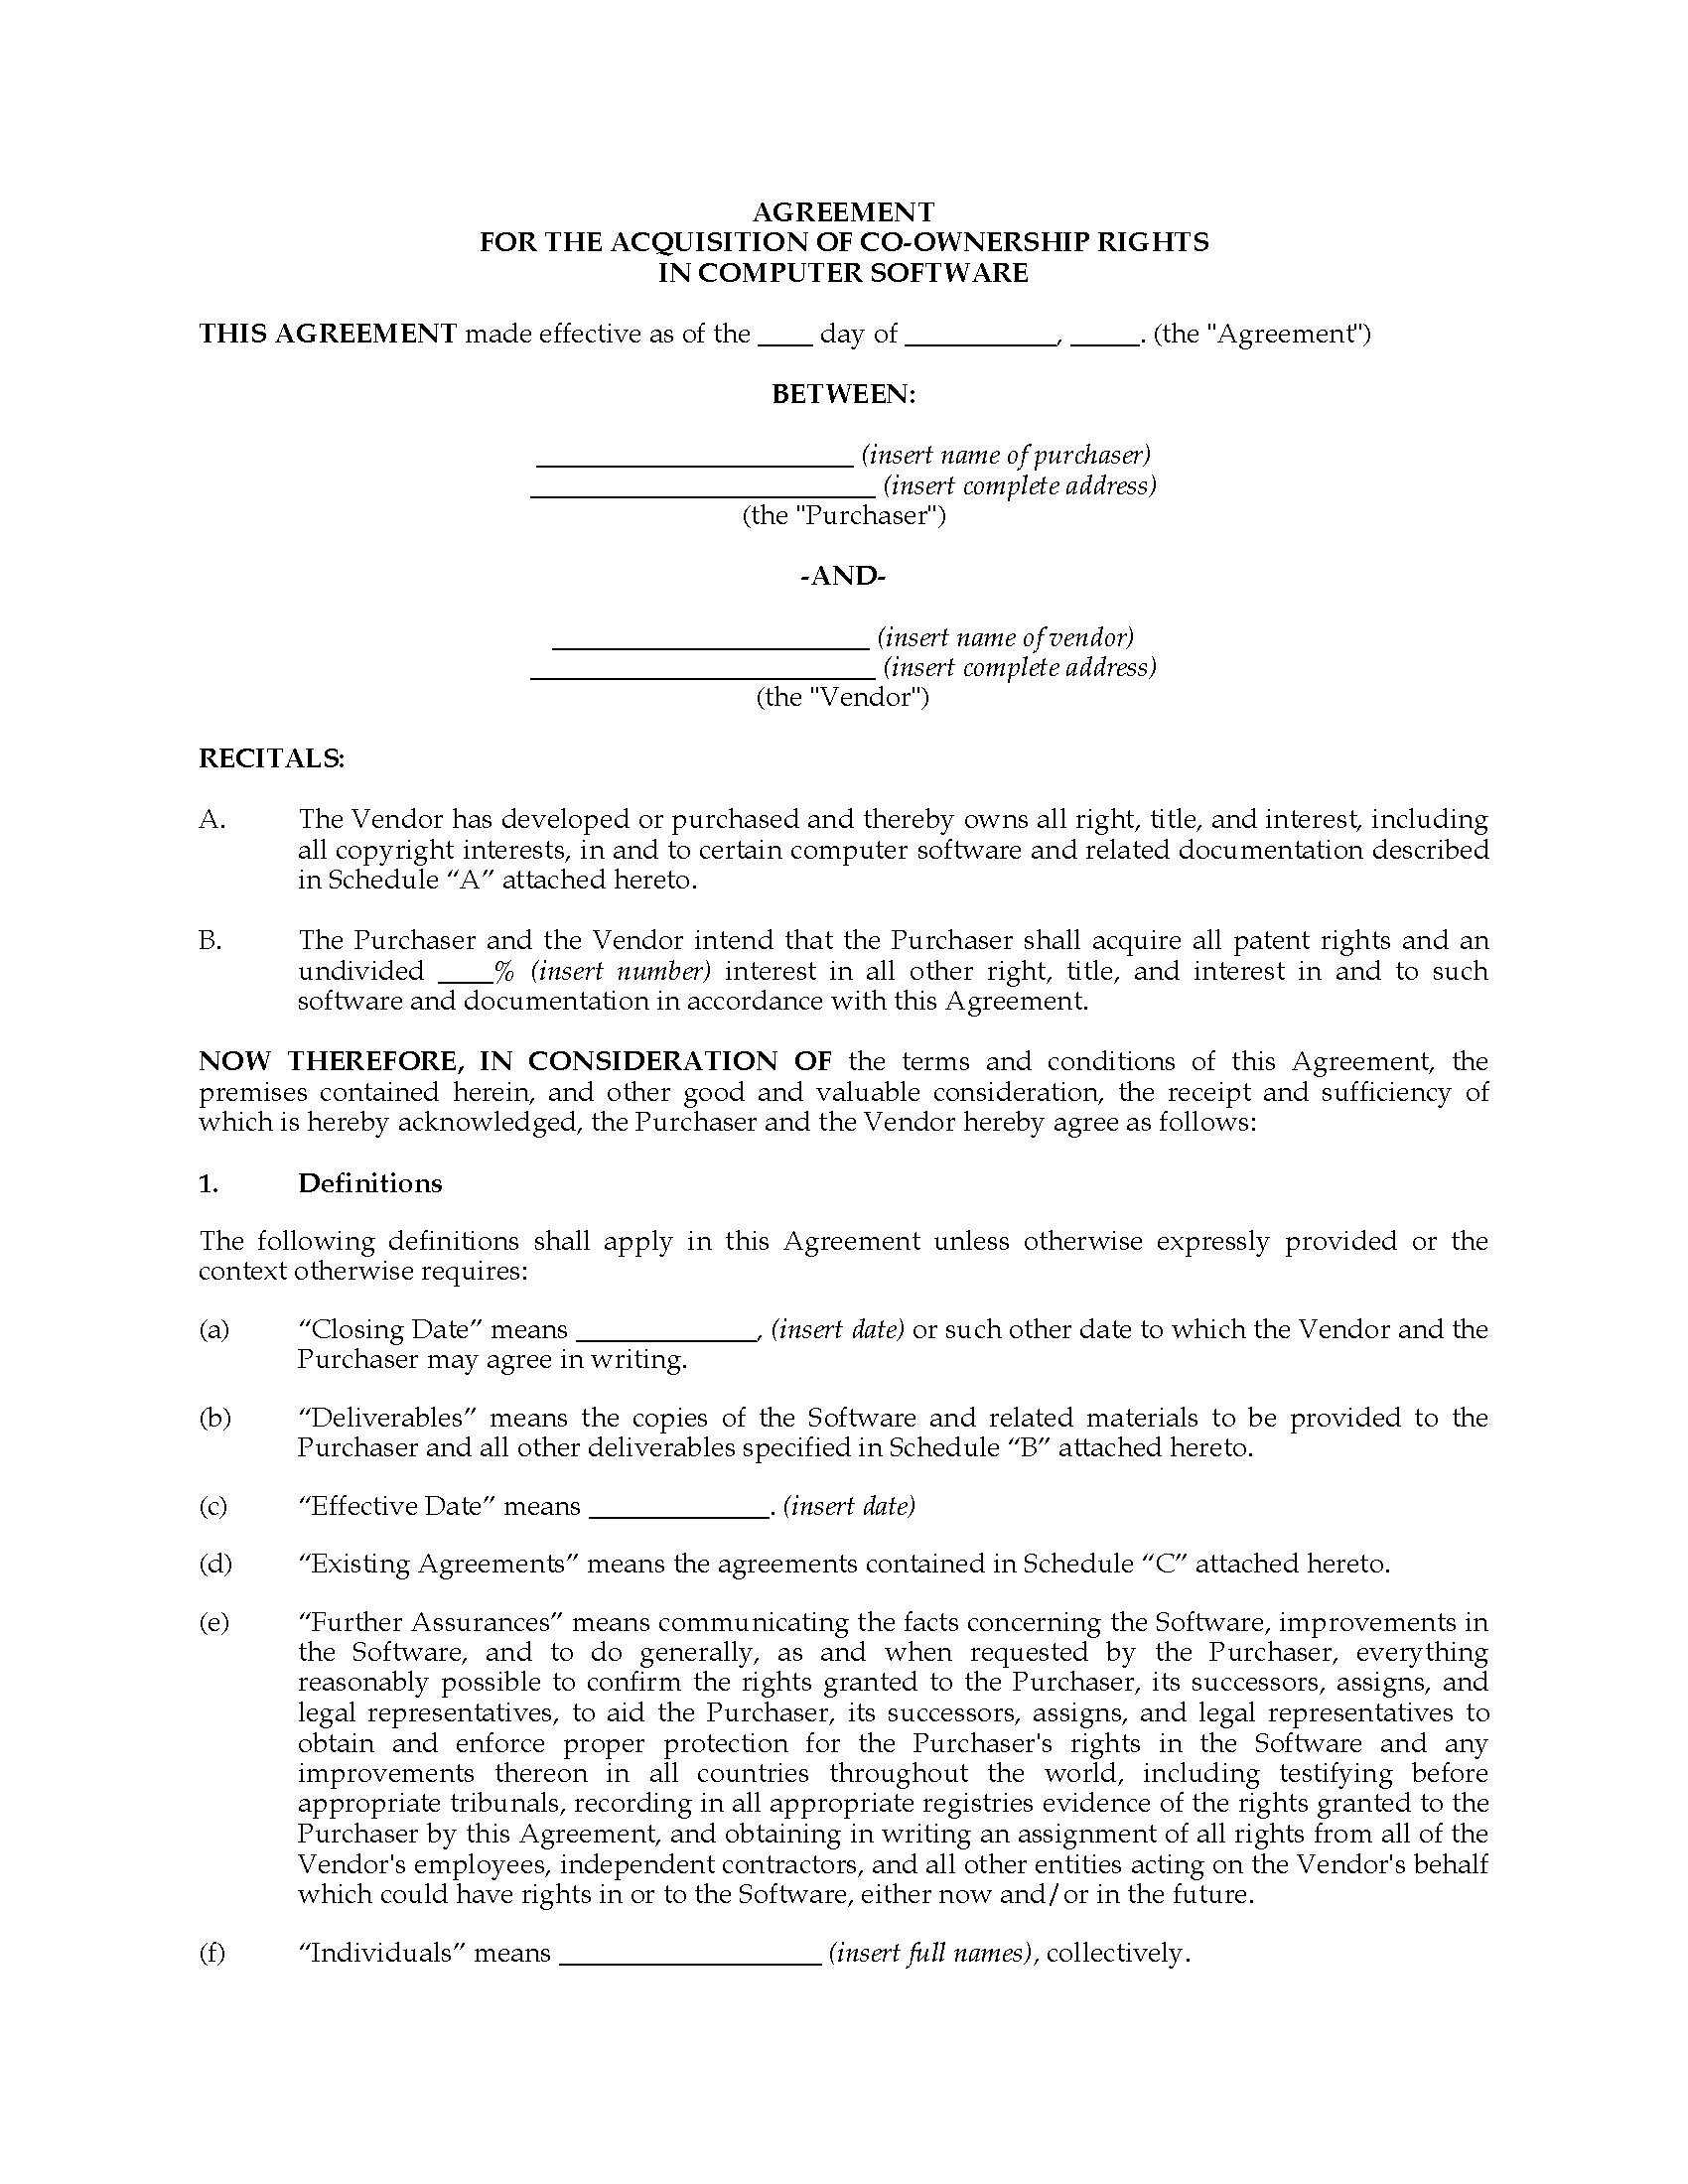 Software Agreement Contract Acquisition Agreement For Co Ownership Of Software Canada